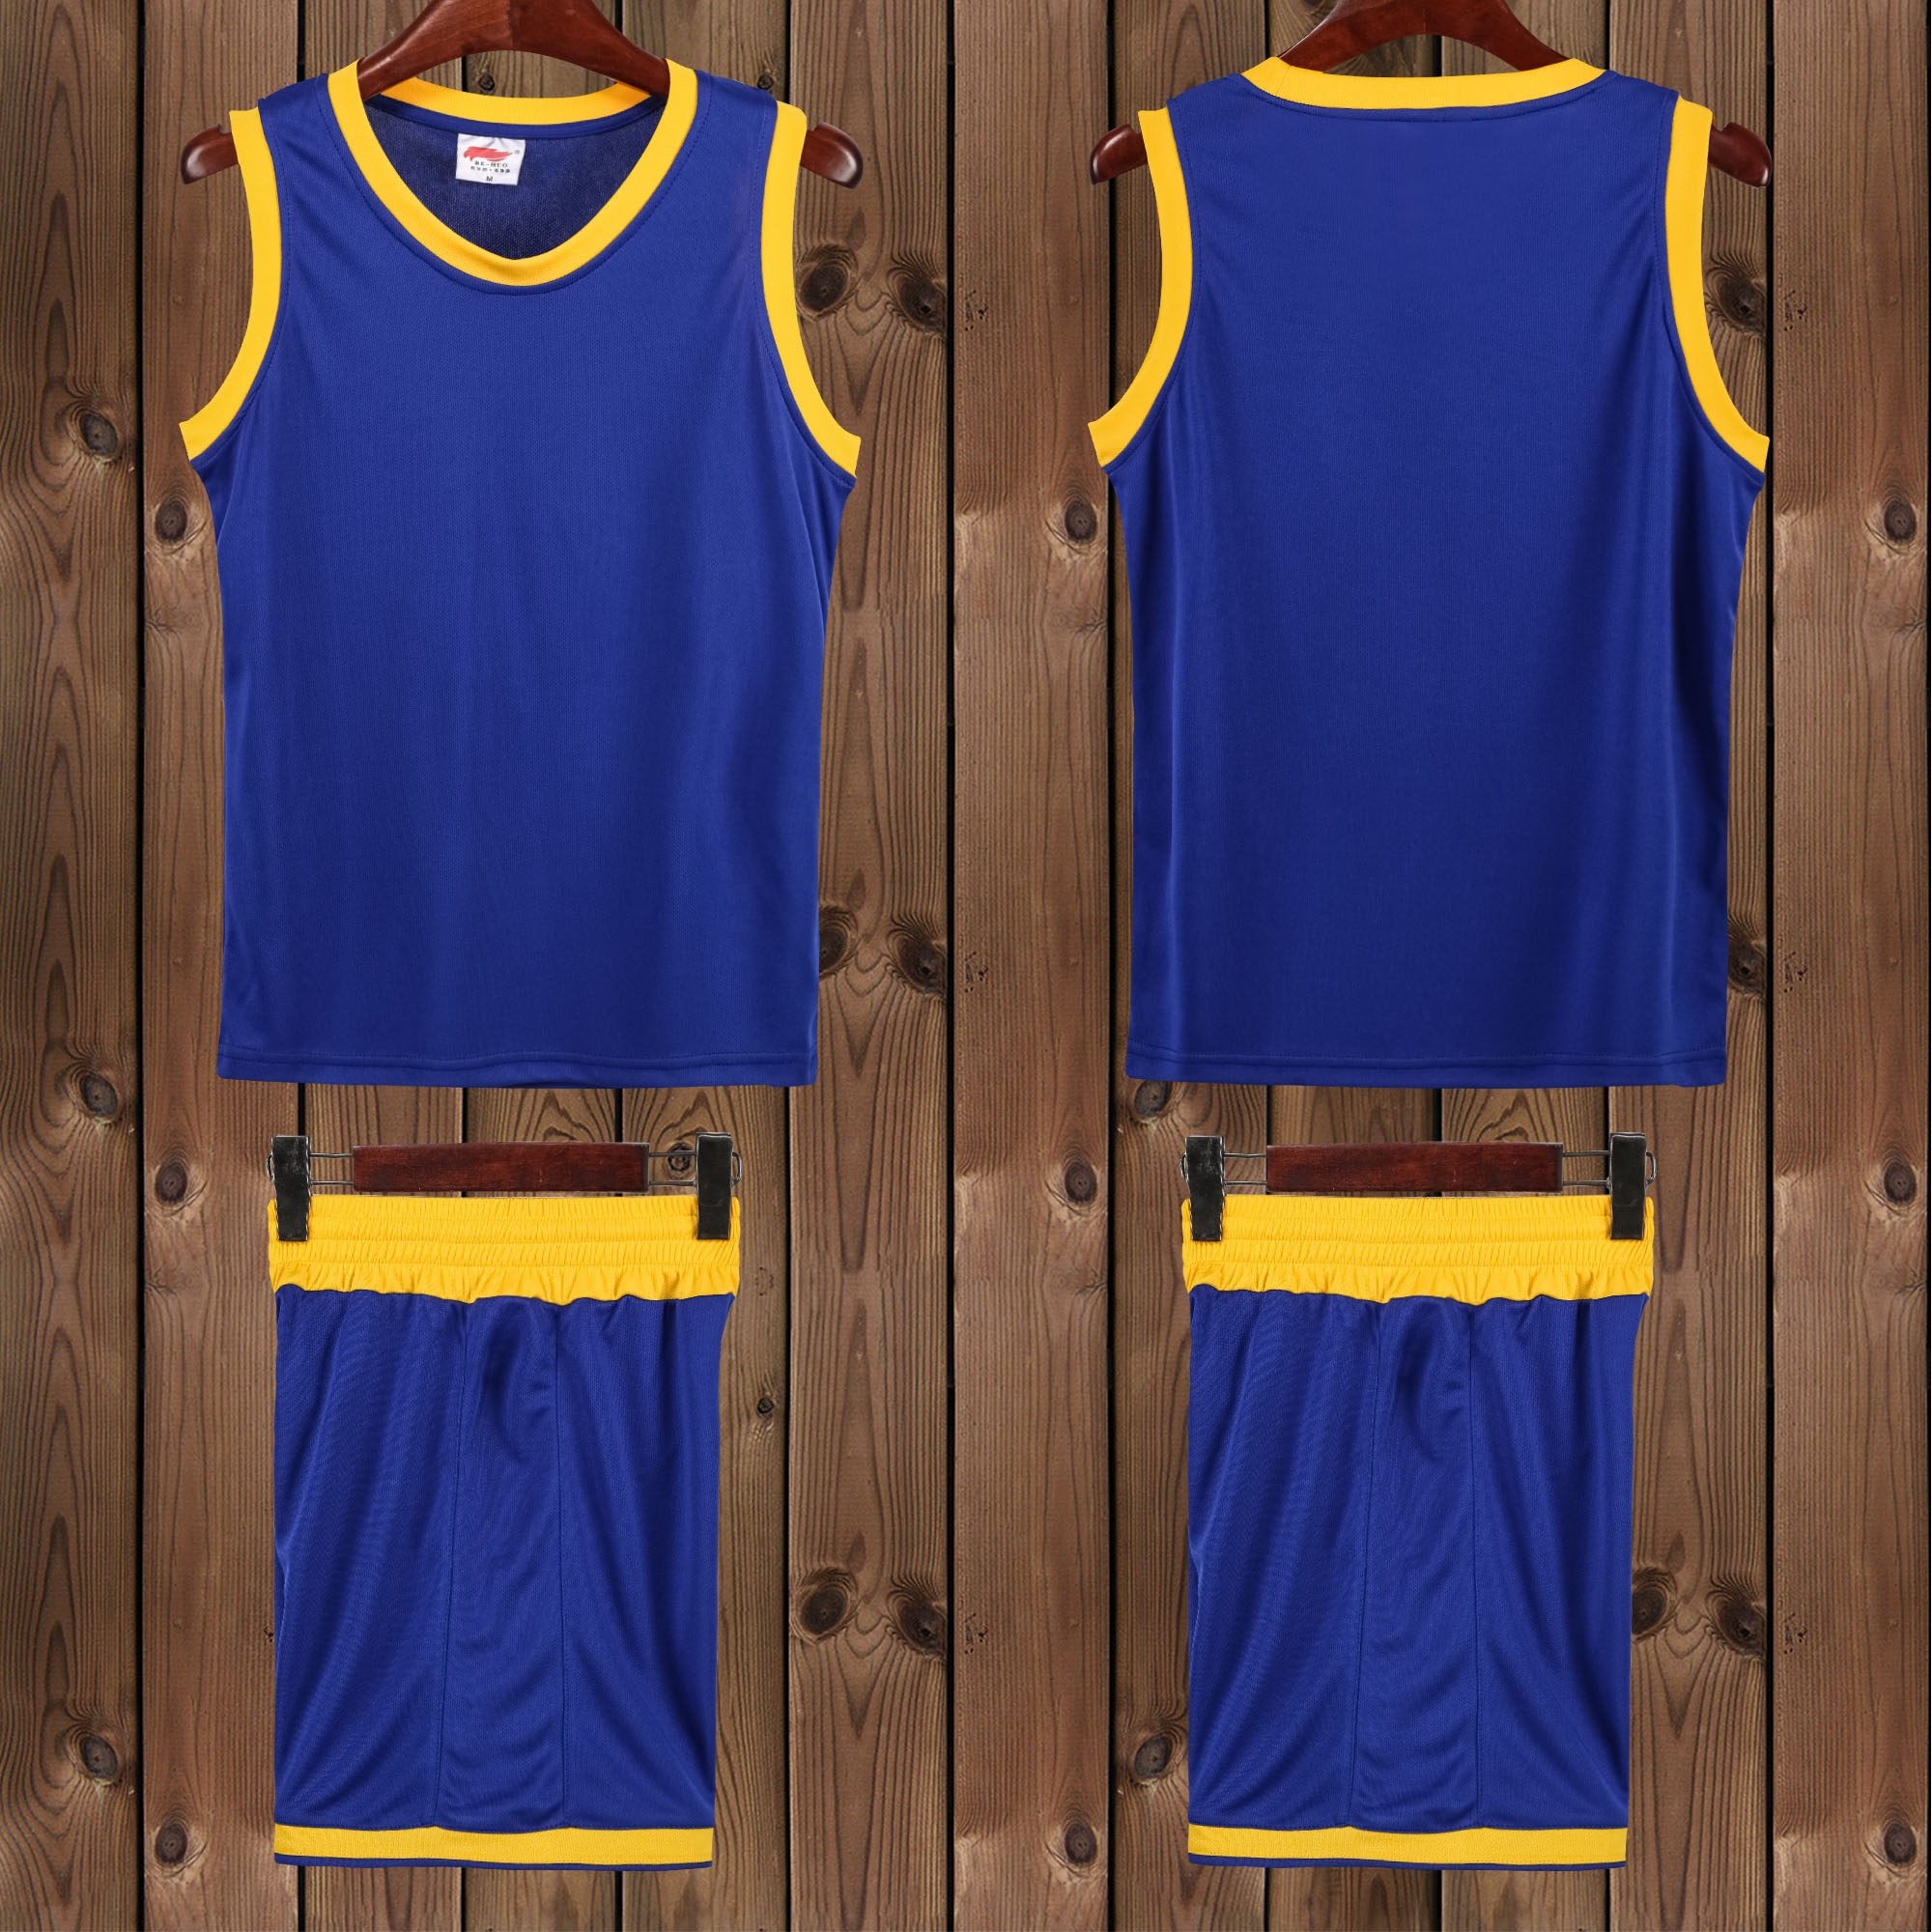 Großhandel Angepasst Basketball Tuch Uniform Team Wear Trainingsanzug Nach Sport Jersey Basketball